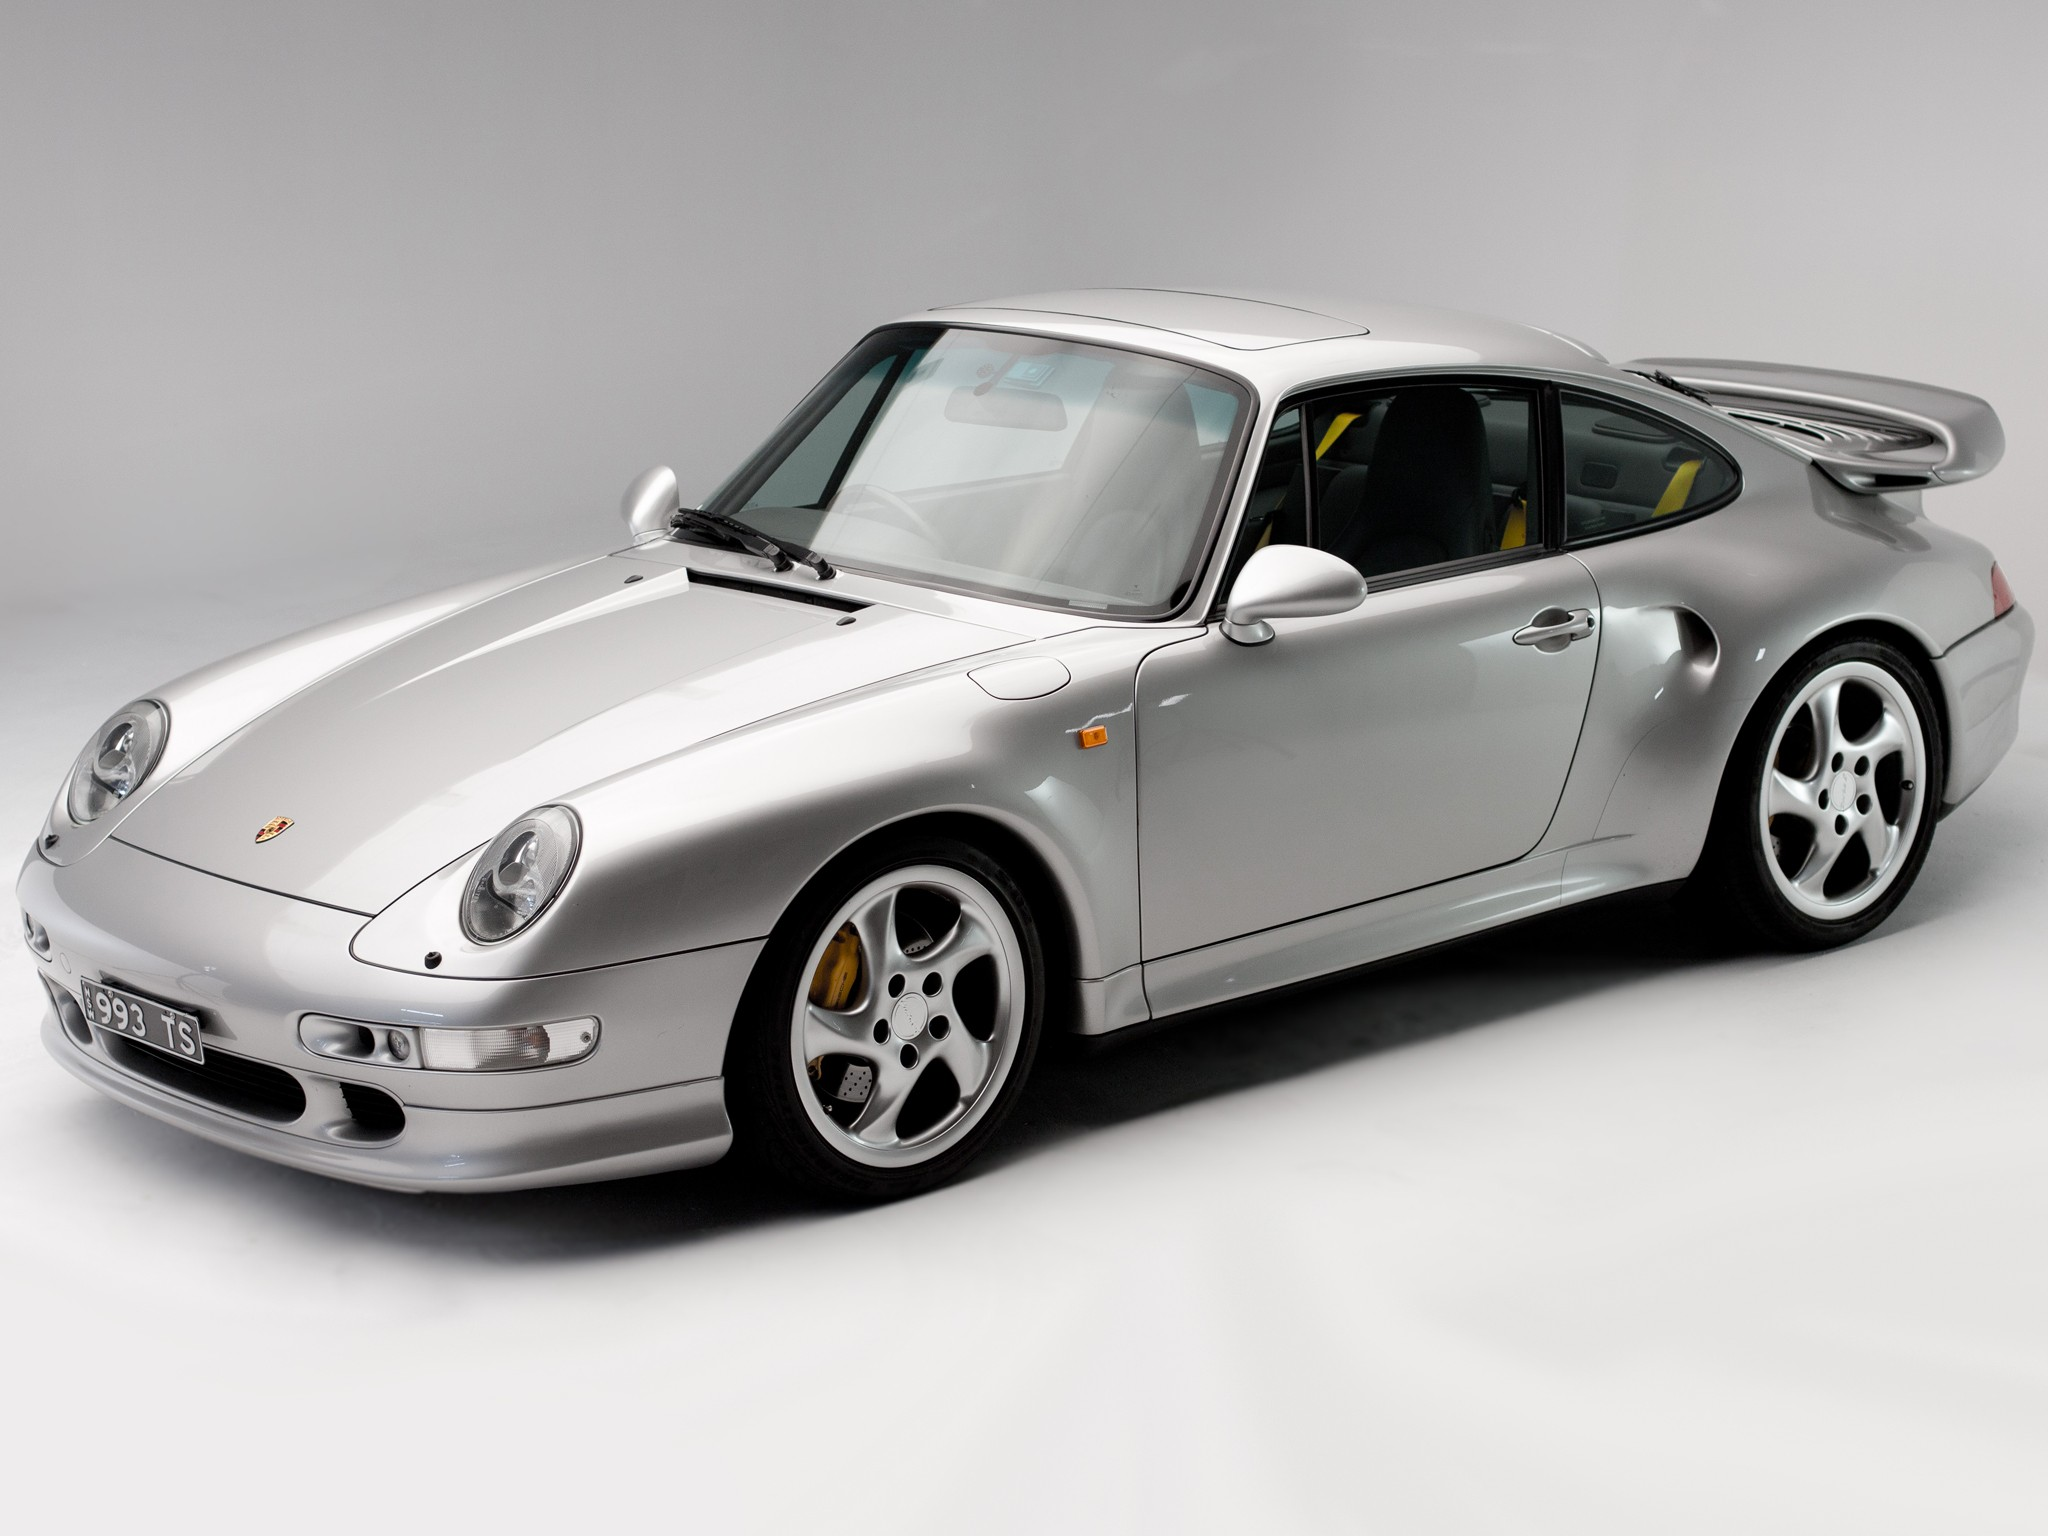 porsche 911 turbo 993 1995 1996 1997 autoevolution. Black Bedroom Furniture Sets. Home Design Ideas